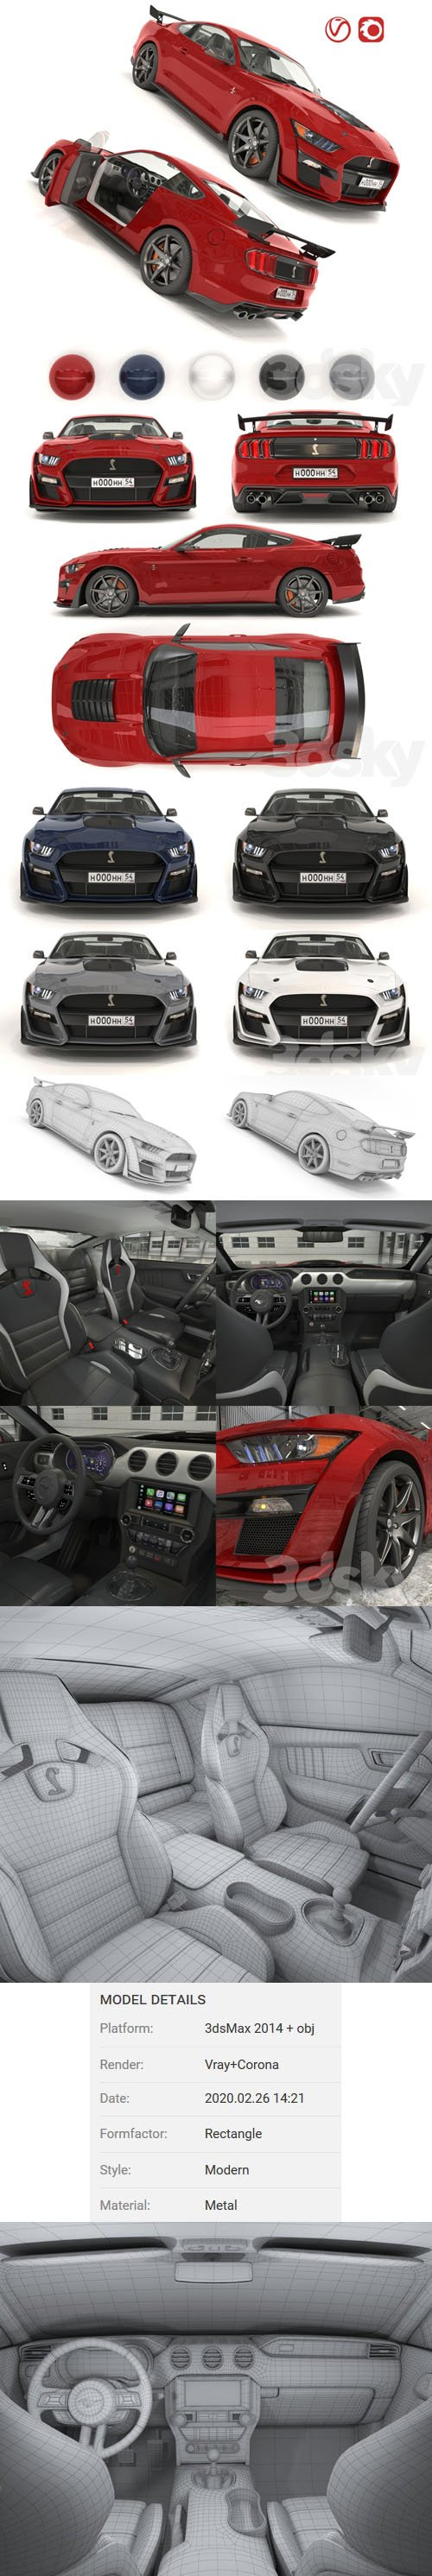 Ford Mustang Shelby GT500 2020 with HQ Interior